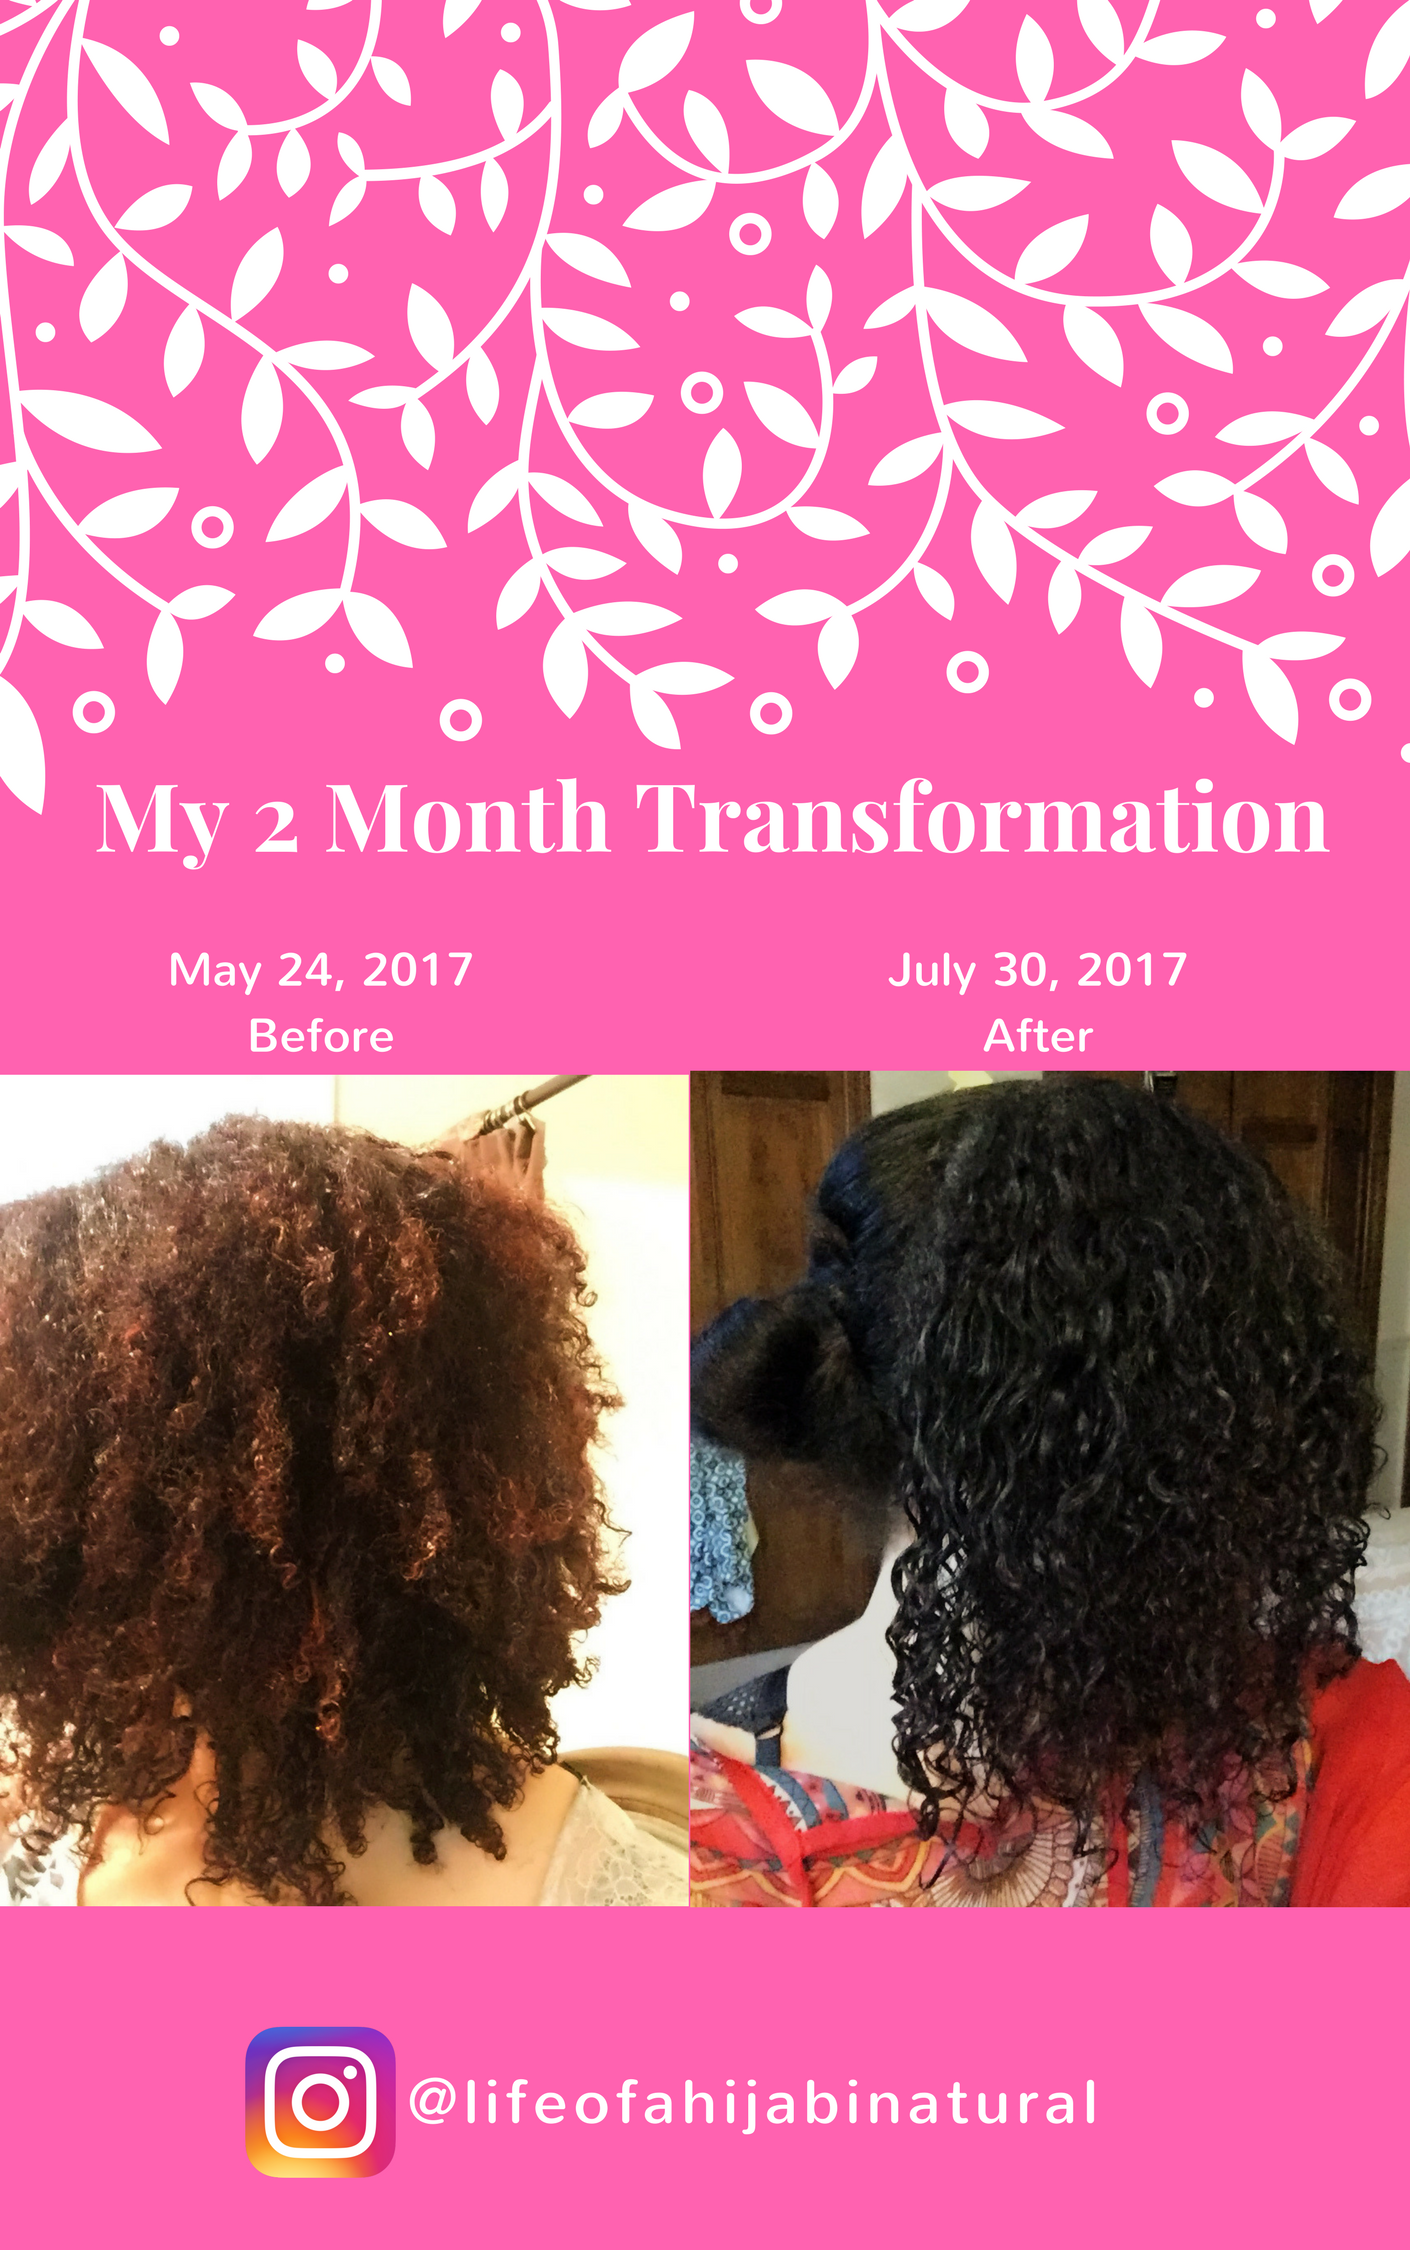 Finally How You Change Course Dry Hair In 2 Weeks 2 Months And It Not The Loc Method Grow Natural Hair Faster Natural Hair Styles How To Grow Natural Hair